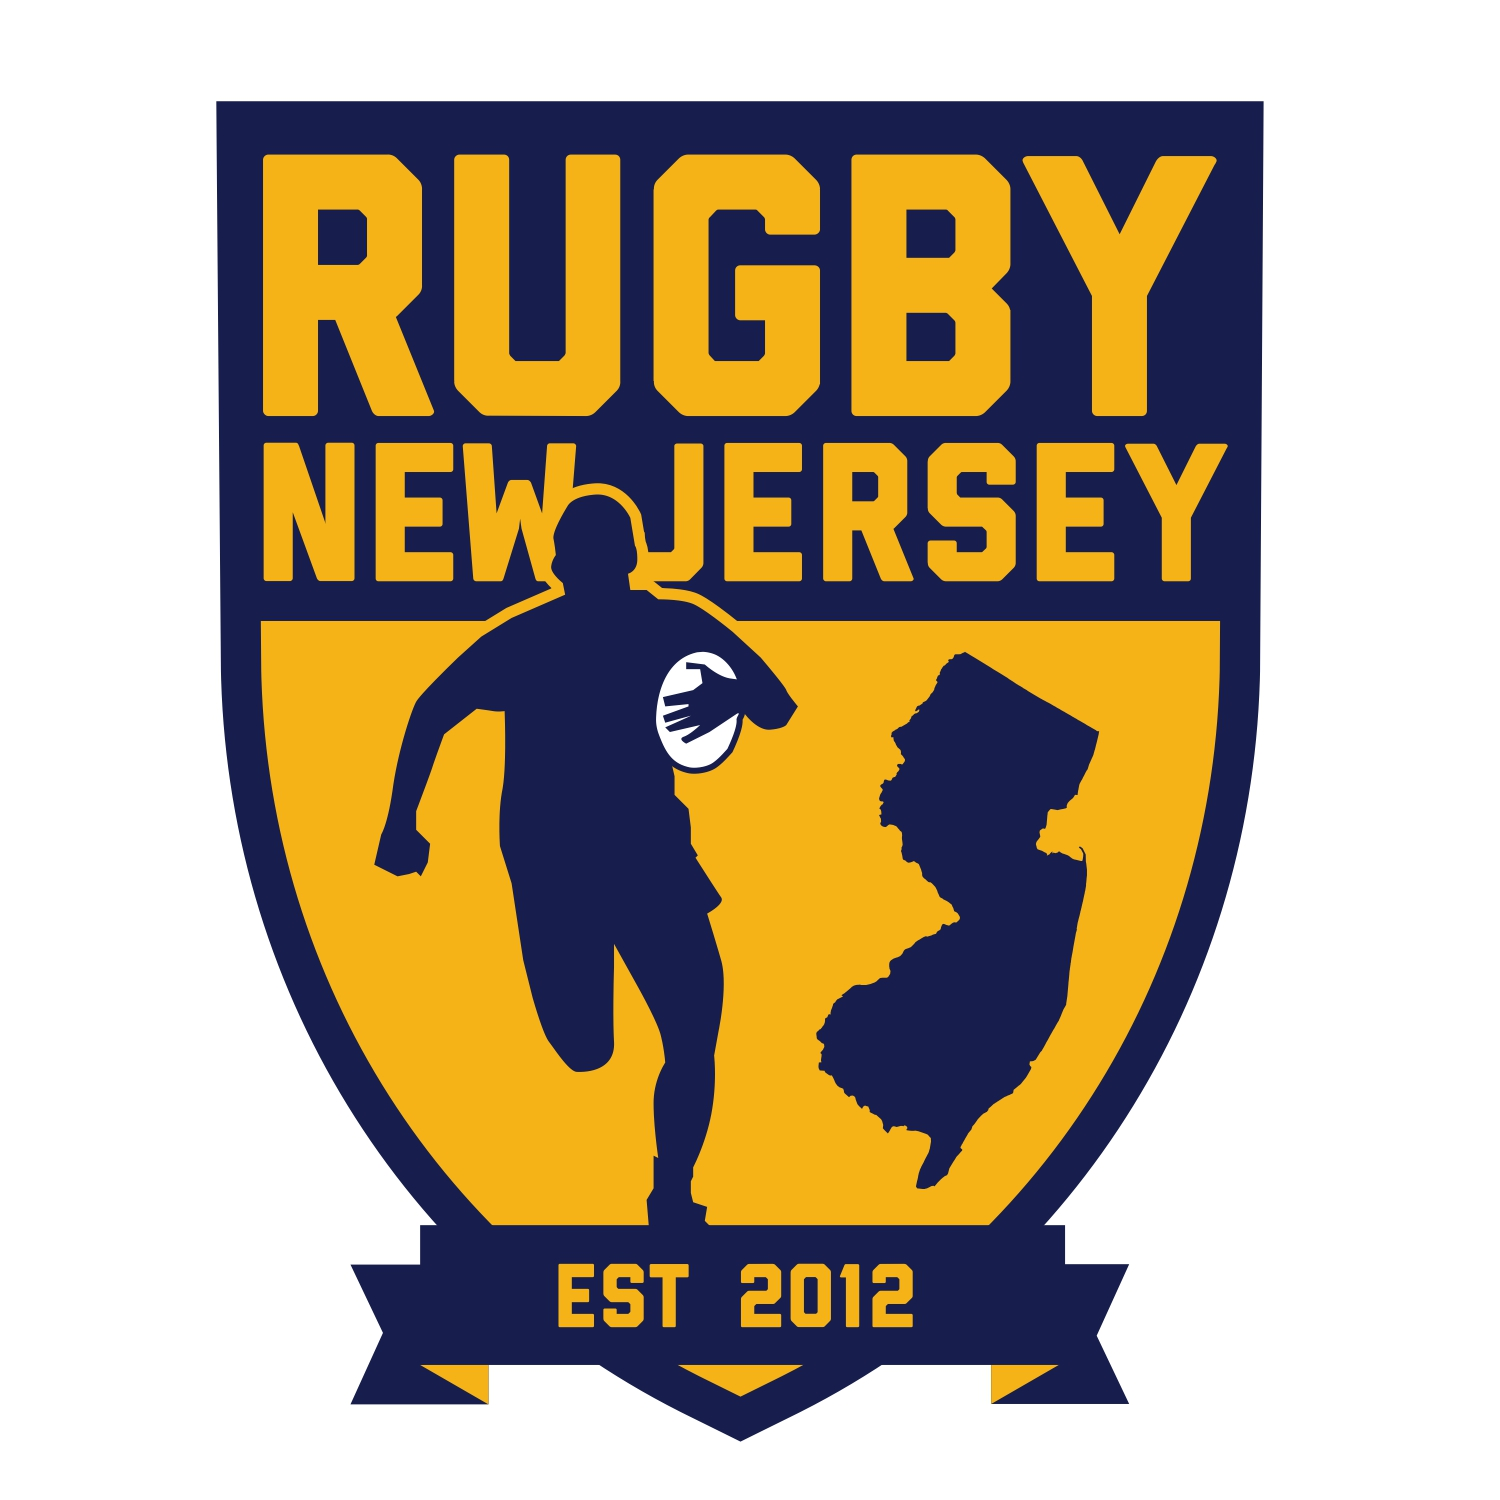 - Rugby New Jersey, supporting youth rugby for ages 7-18, leading the way for development through college and into senior clubs. Est. 2012.